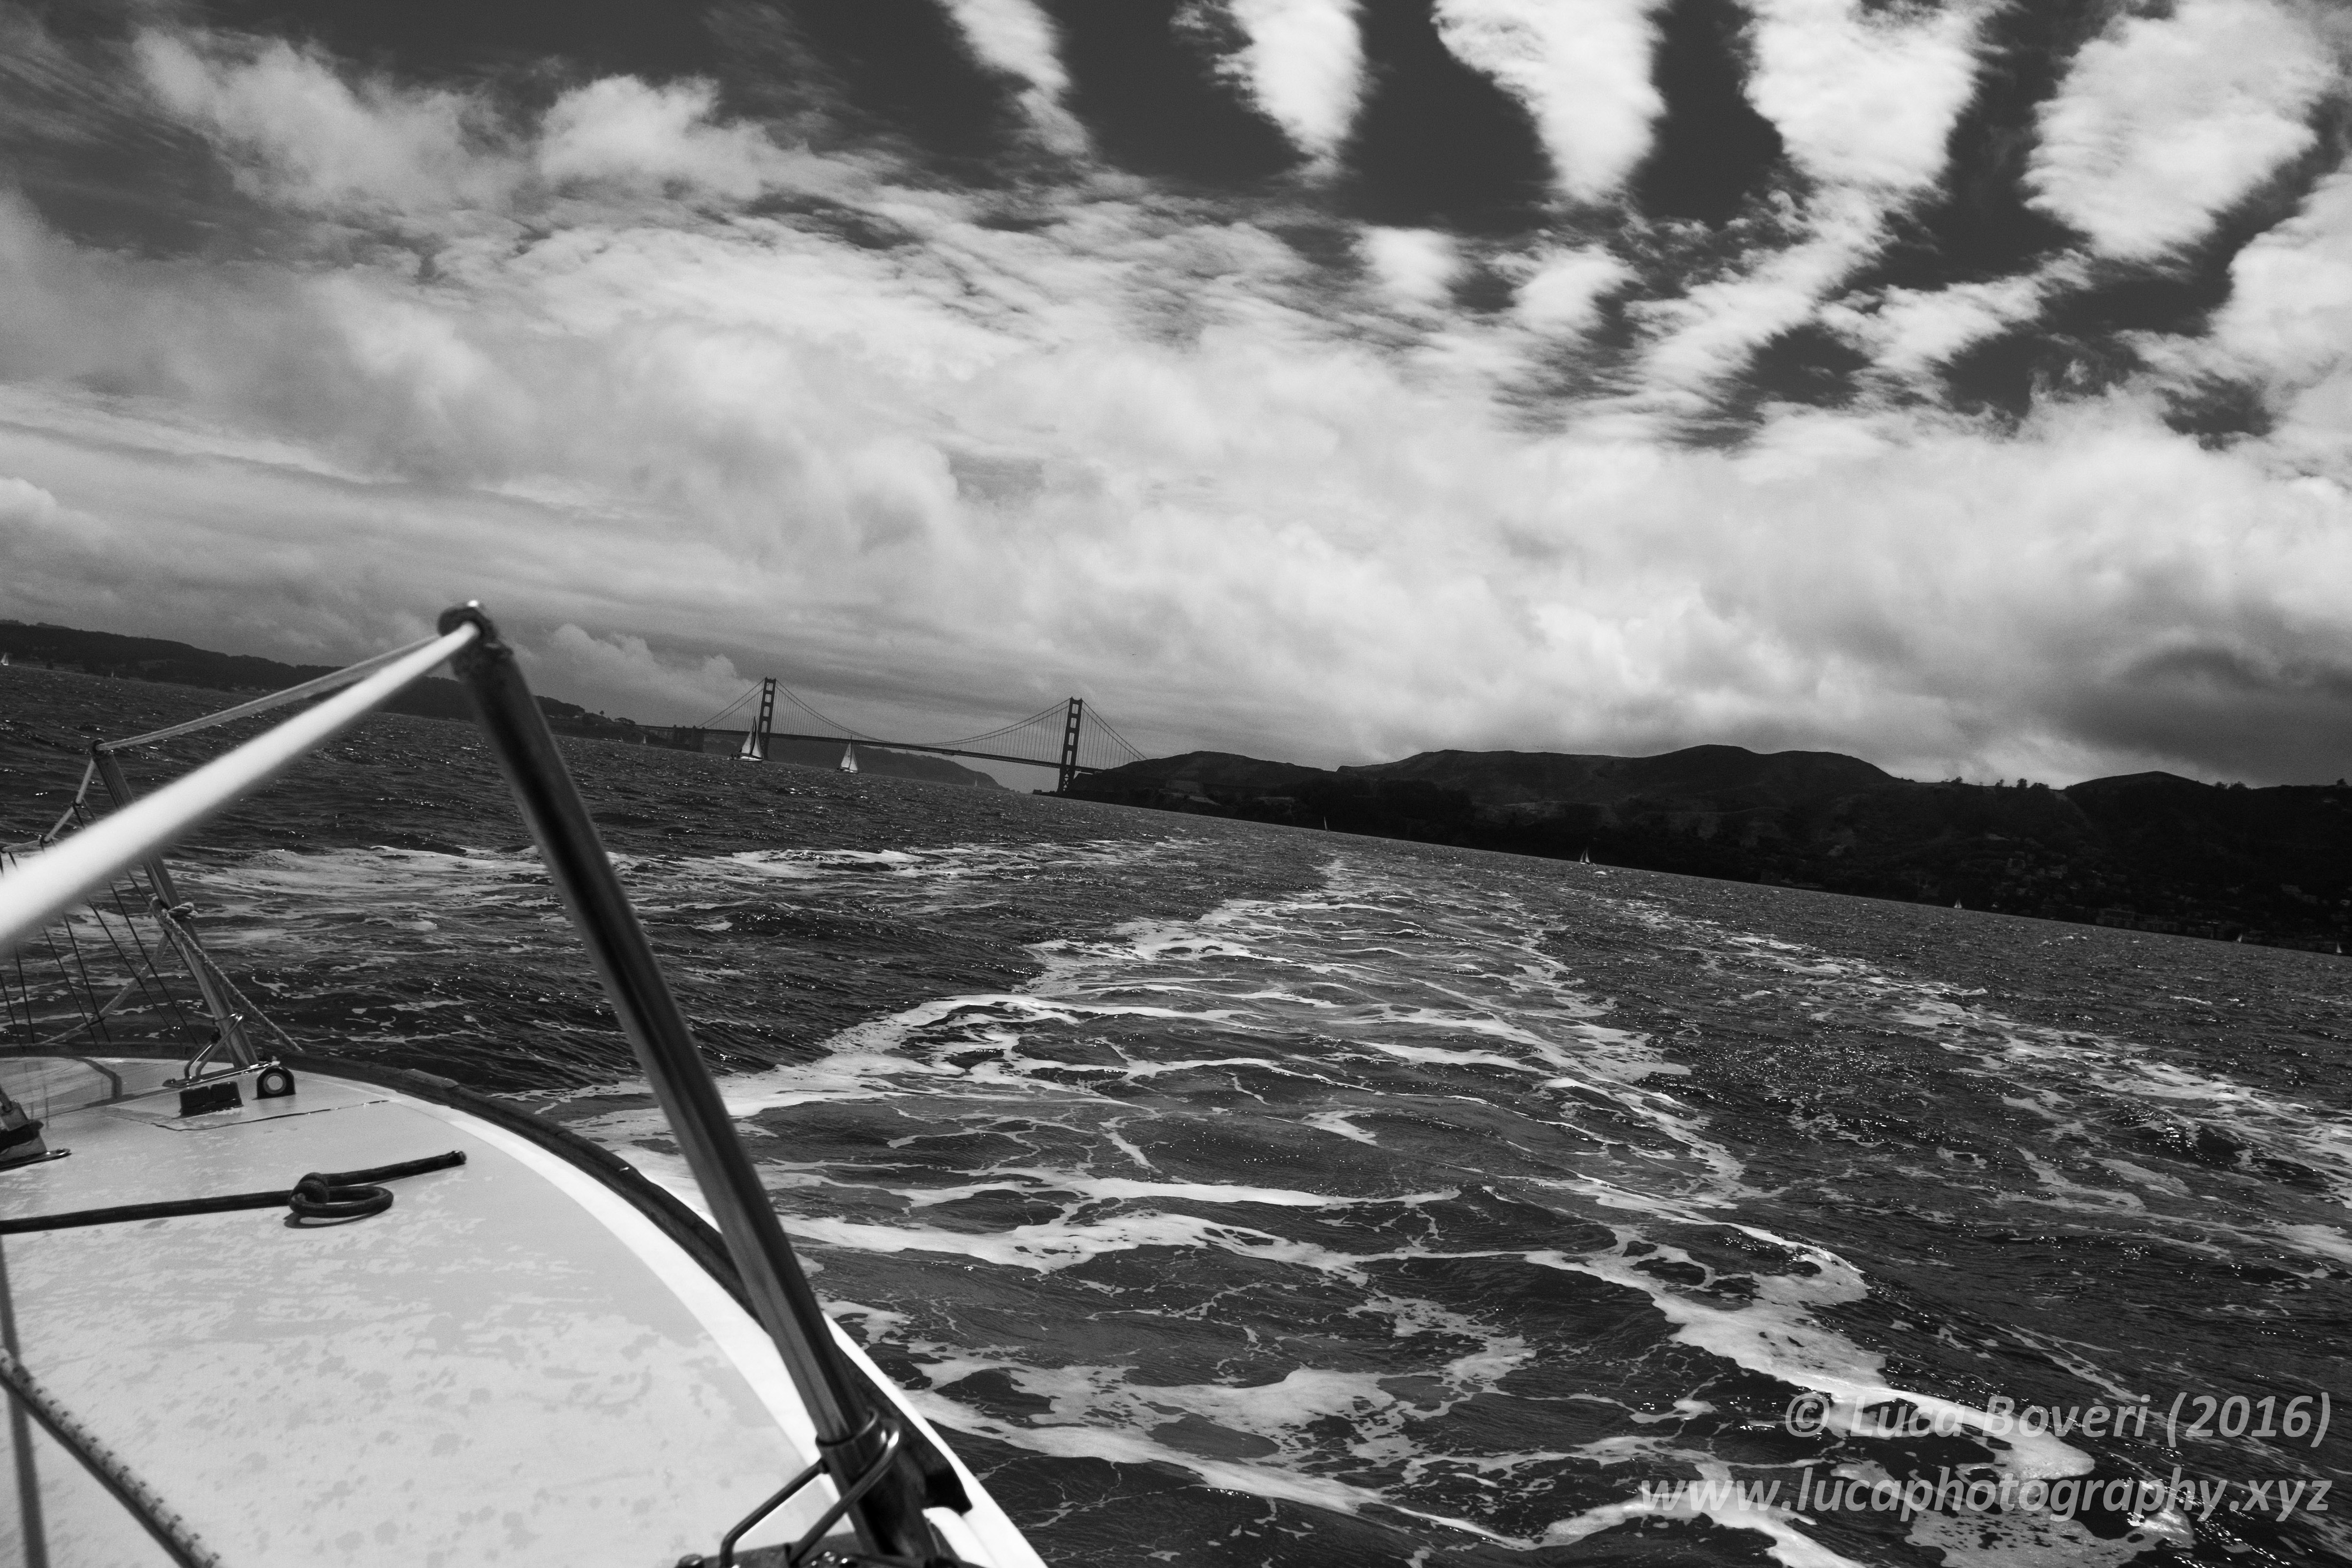 Sailing by the bridge. @lucaboveri